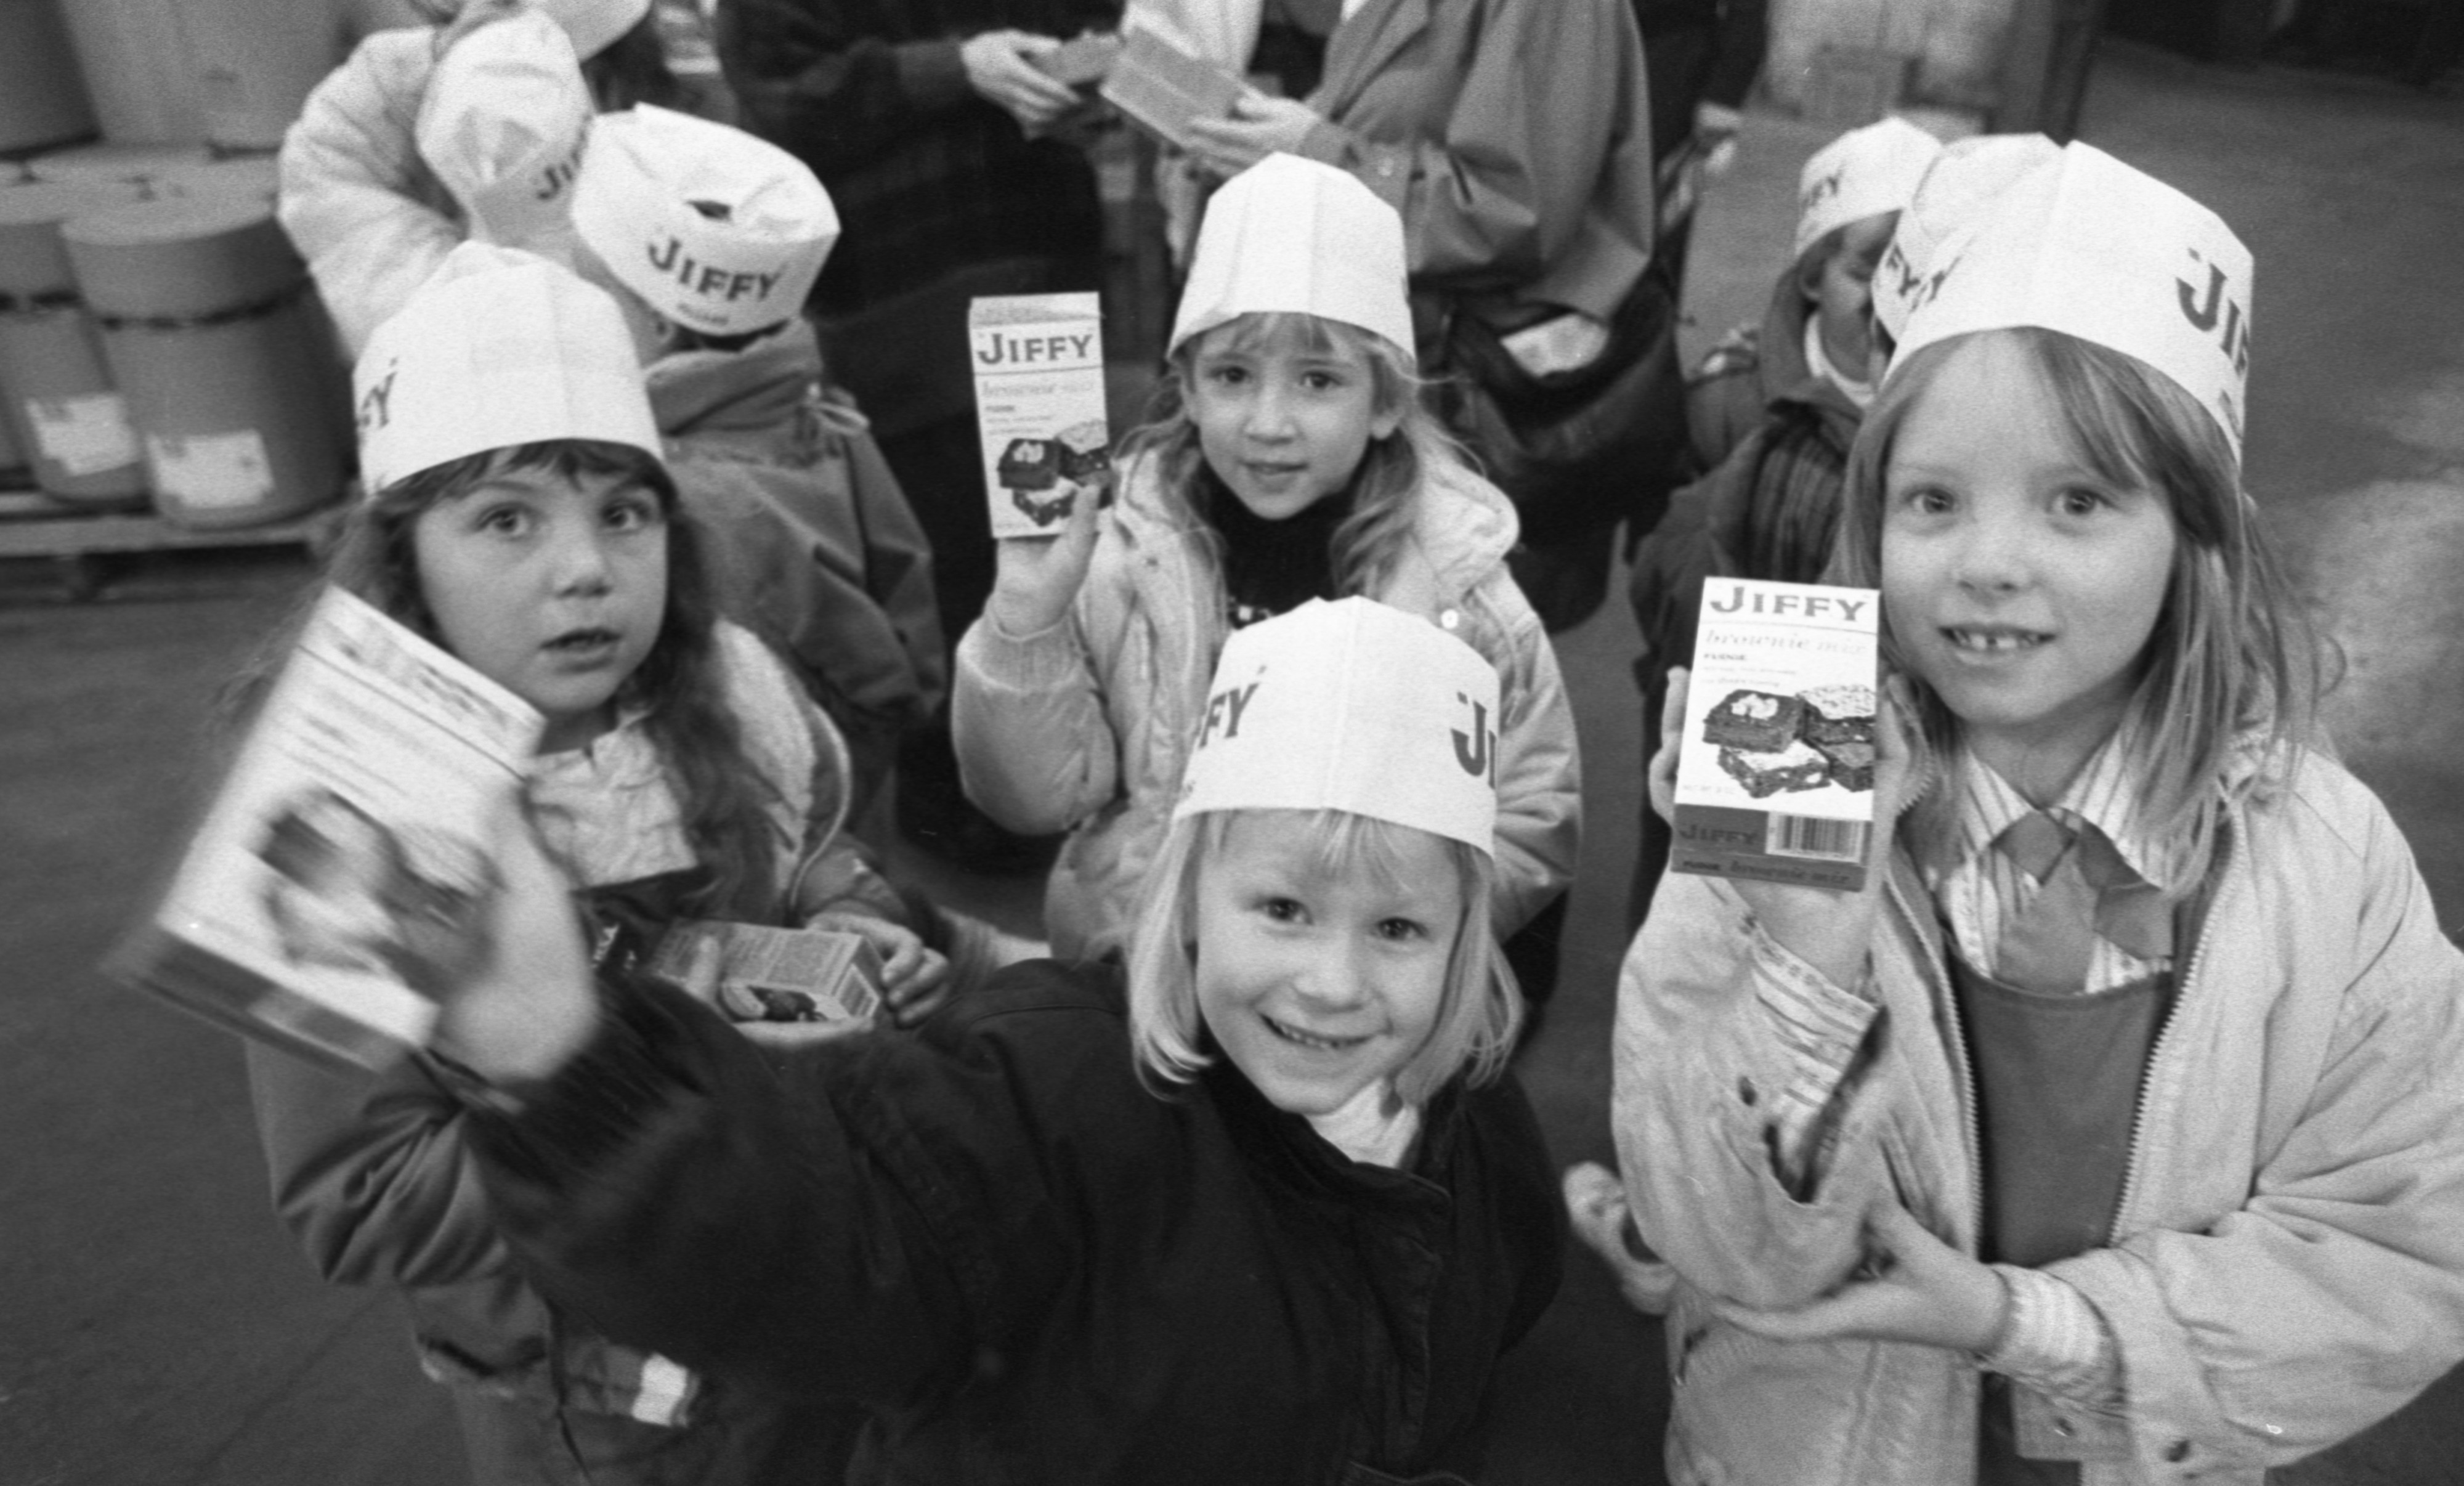 Members Of Haisley Elementary Brownie Troop Receive Free Boxes Of Jiffy Mix On Their Tour, January 1989 image